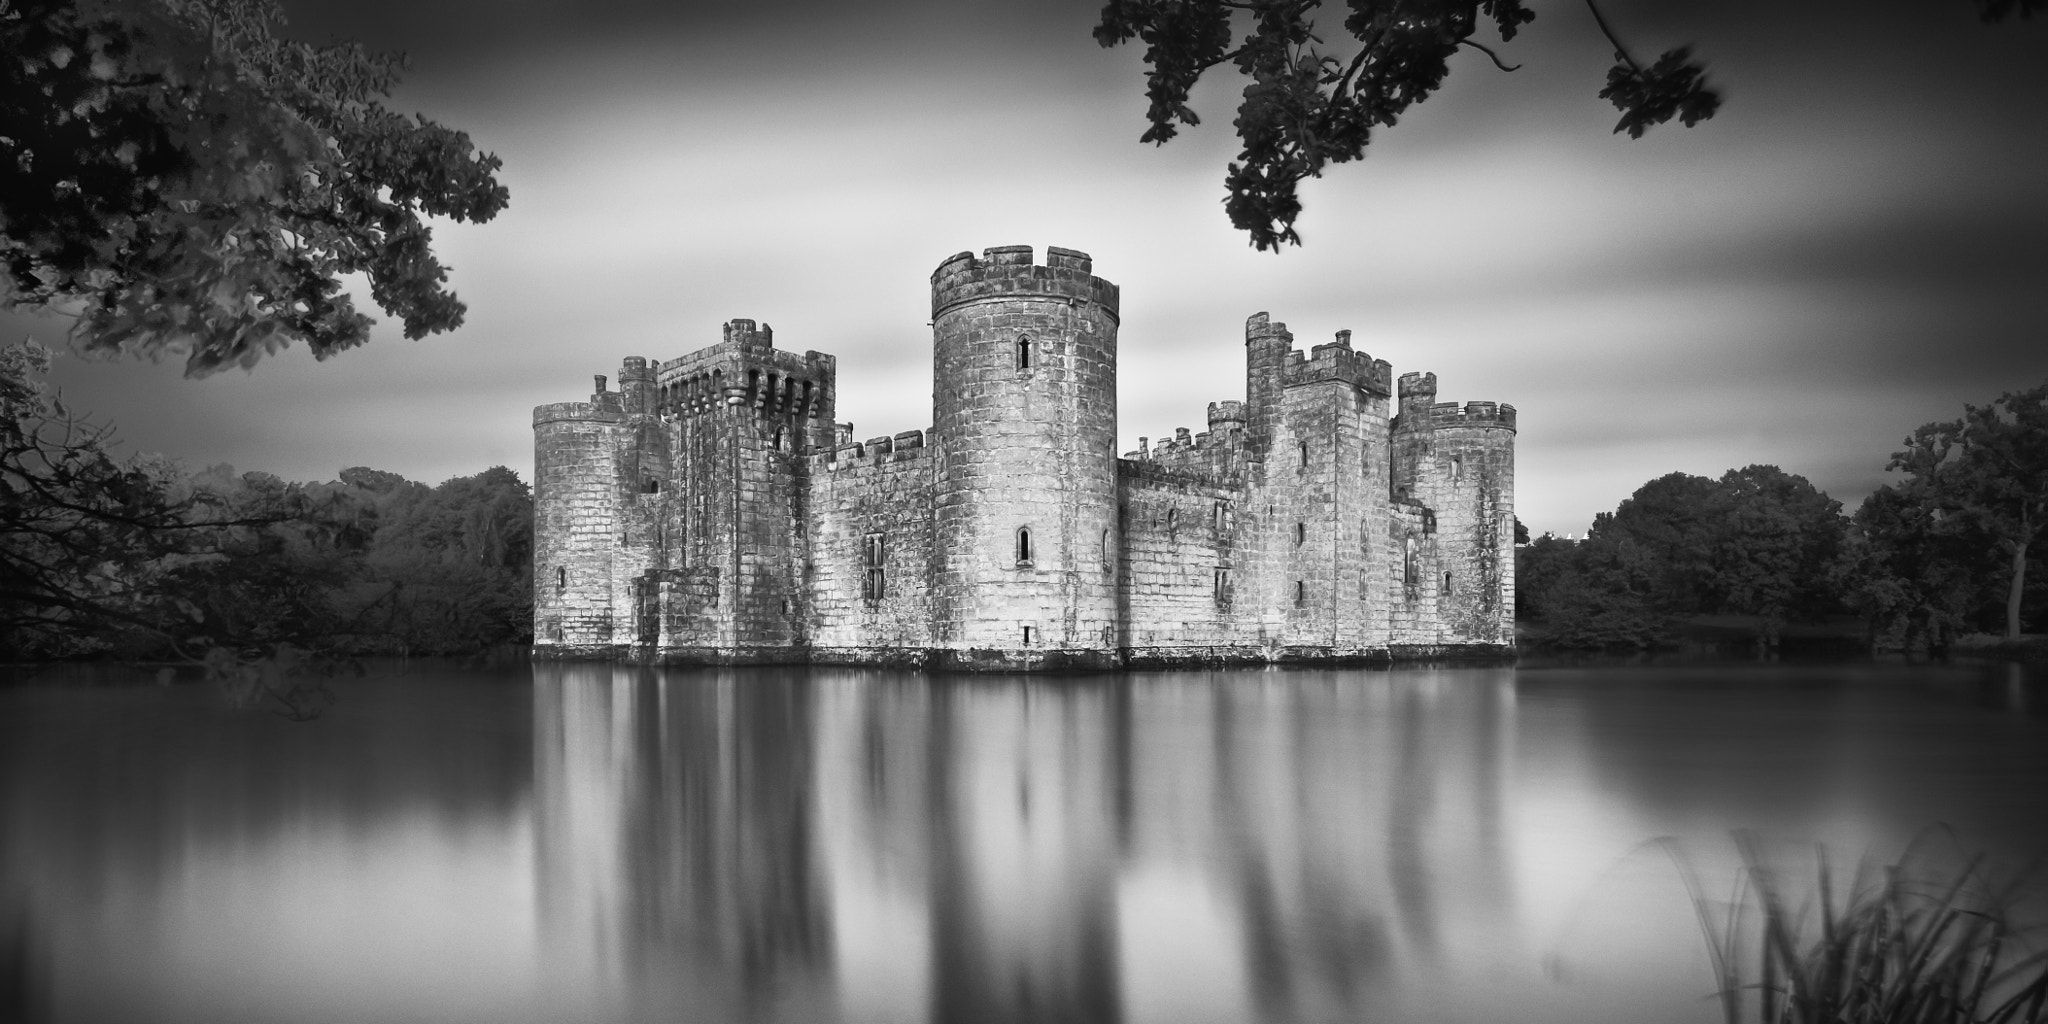 Photograph Bodiam Castle by Bill Allen on 500px